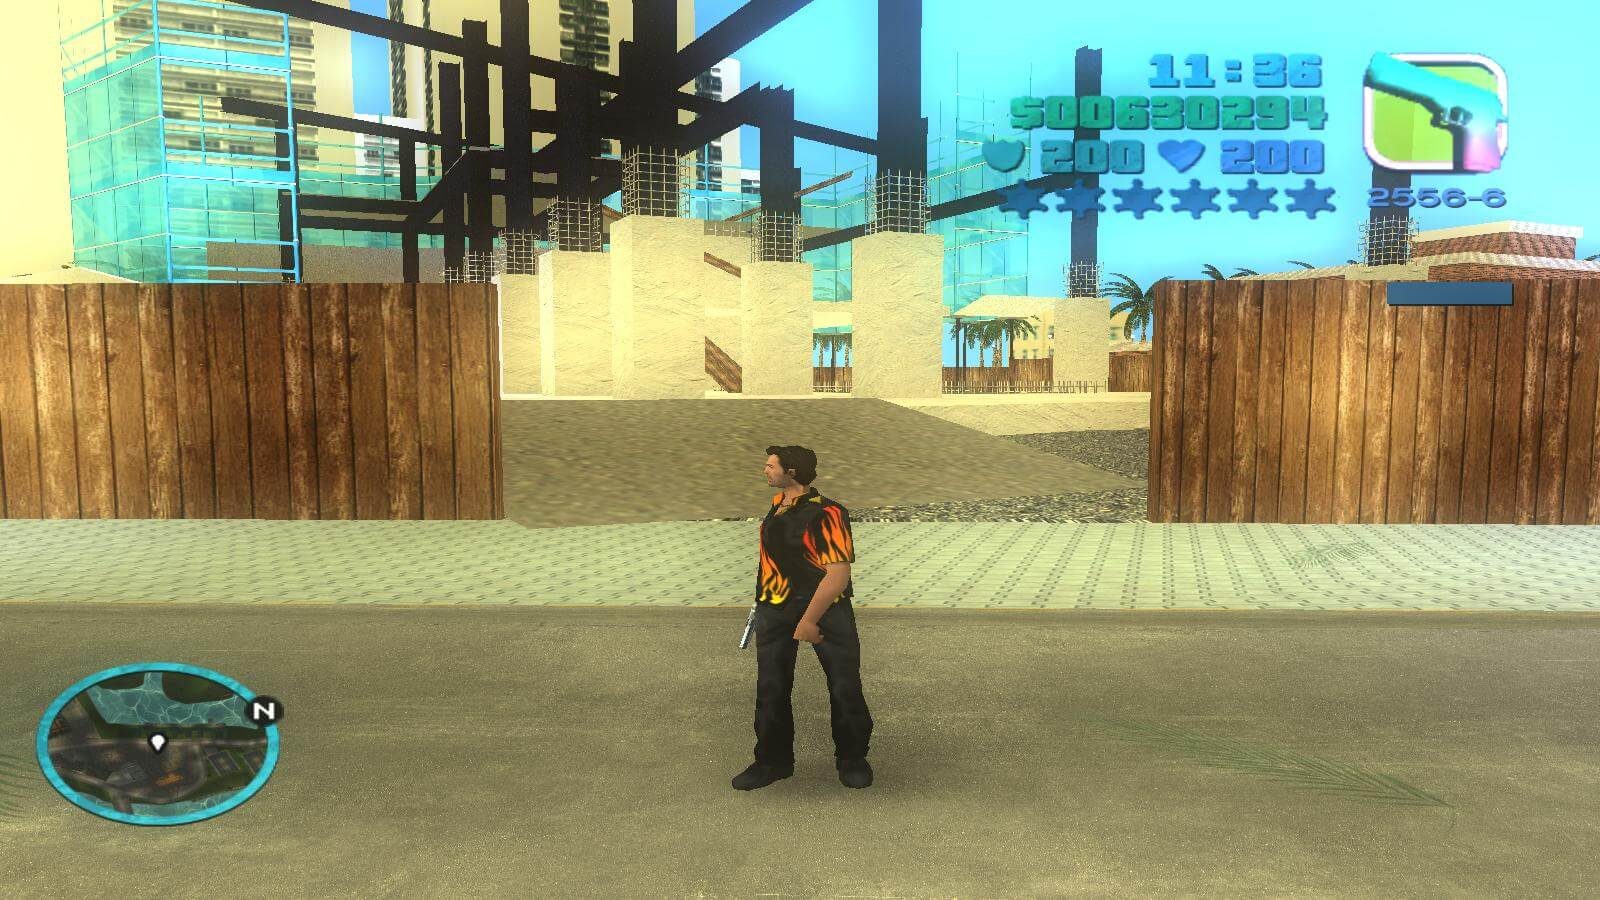 GTA Vice City Modern mod version 1 2 adds new textures and HD grass